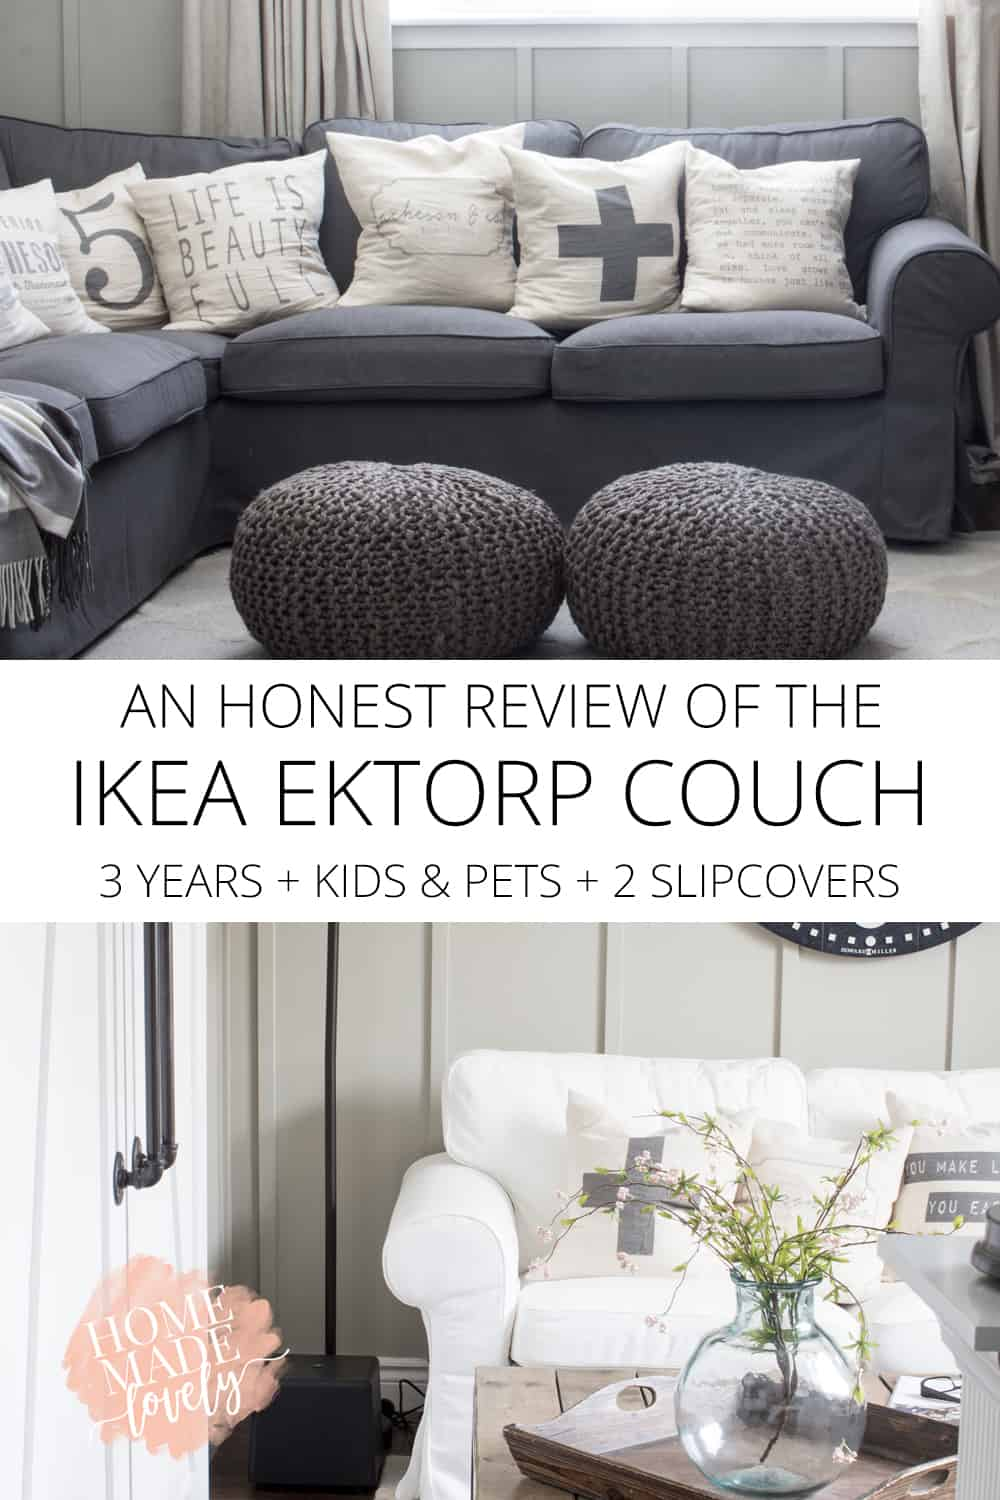 An Honest Review Of The Ikea Ektorp Couch After 3 Years